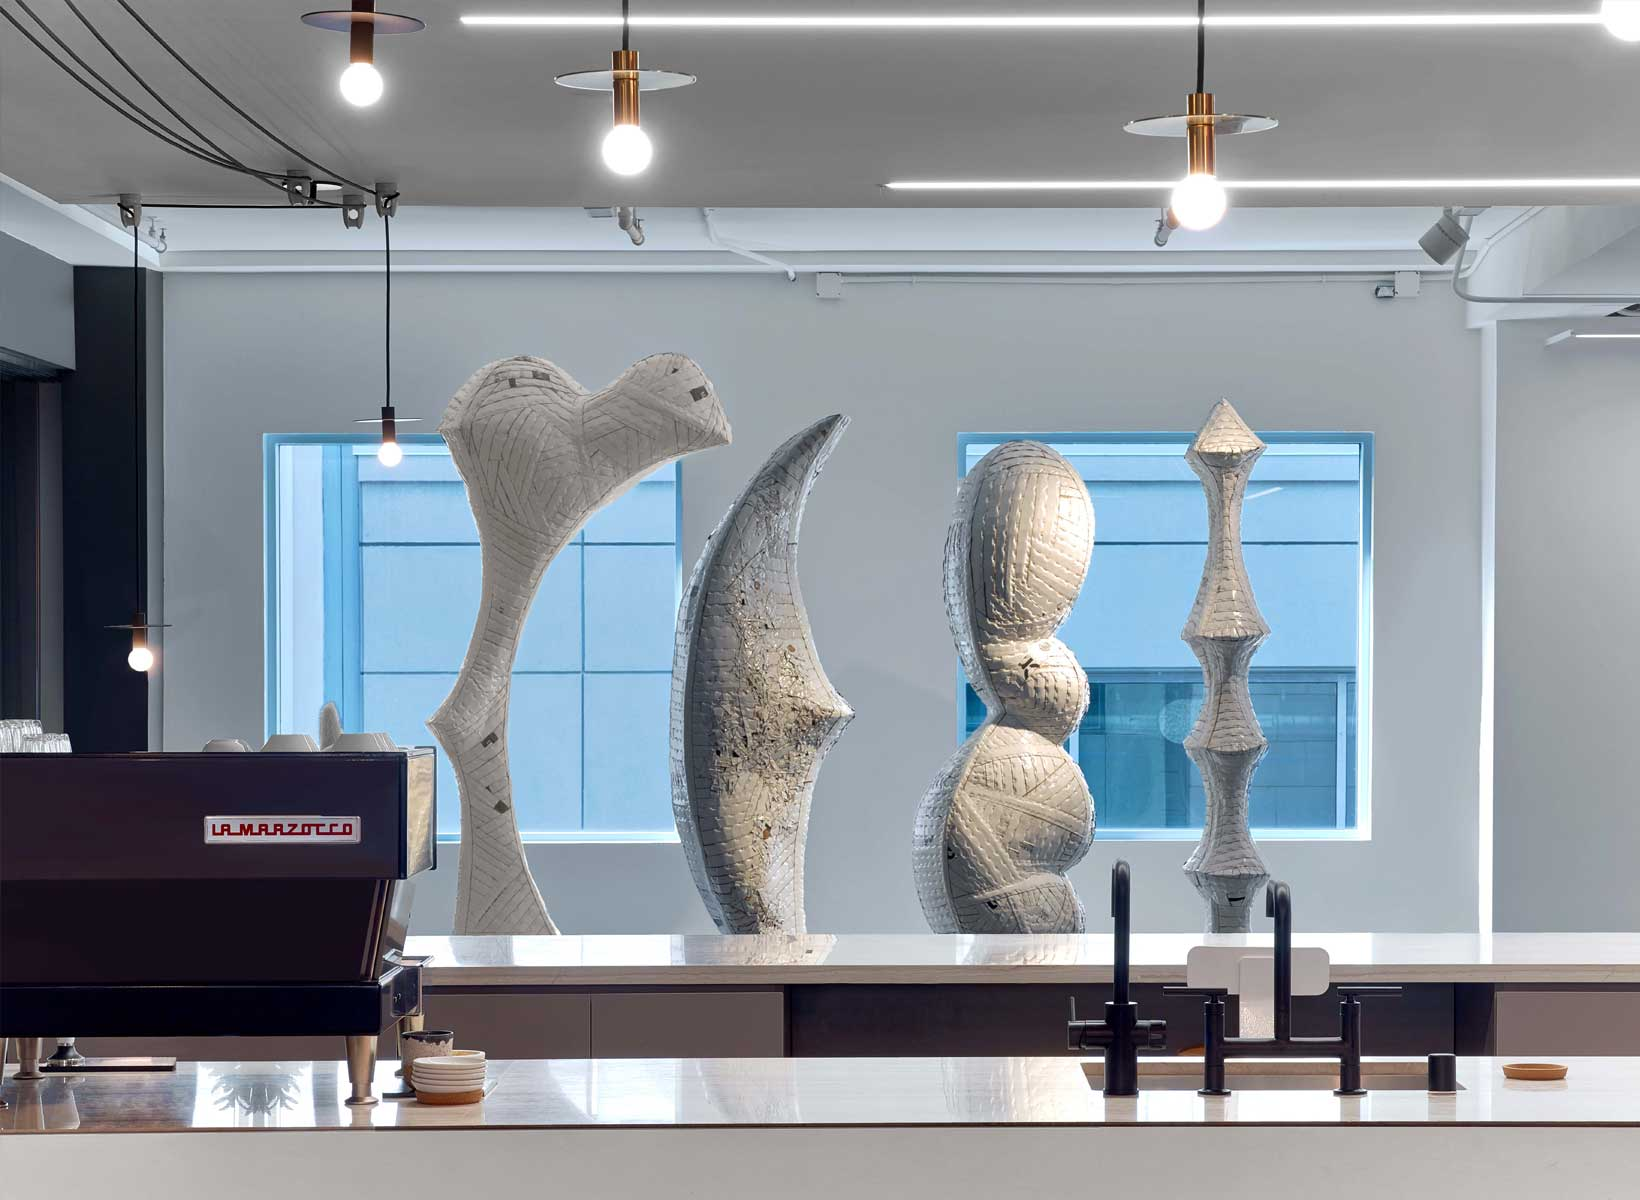 An office with four large sculptures